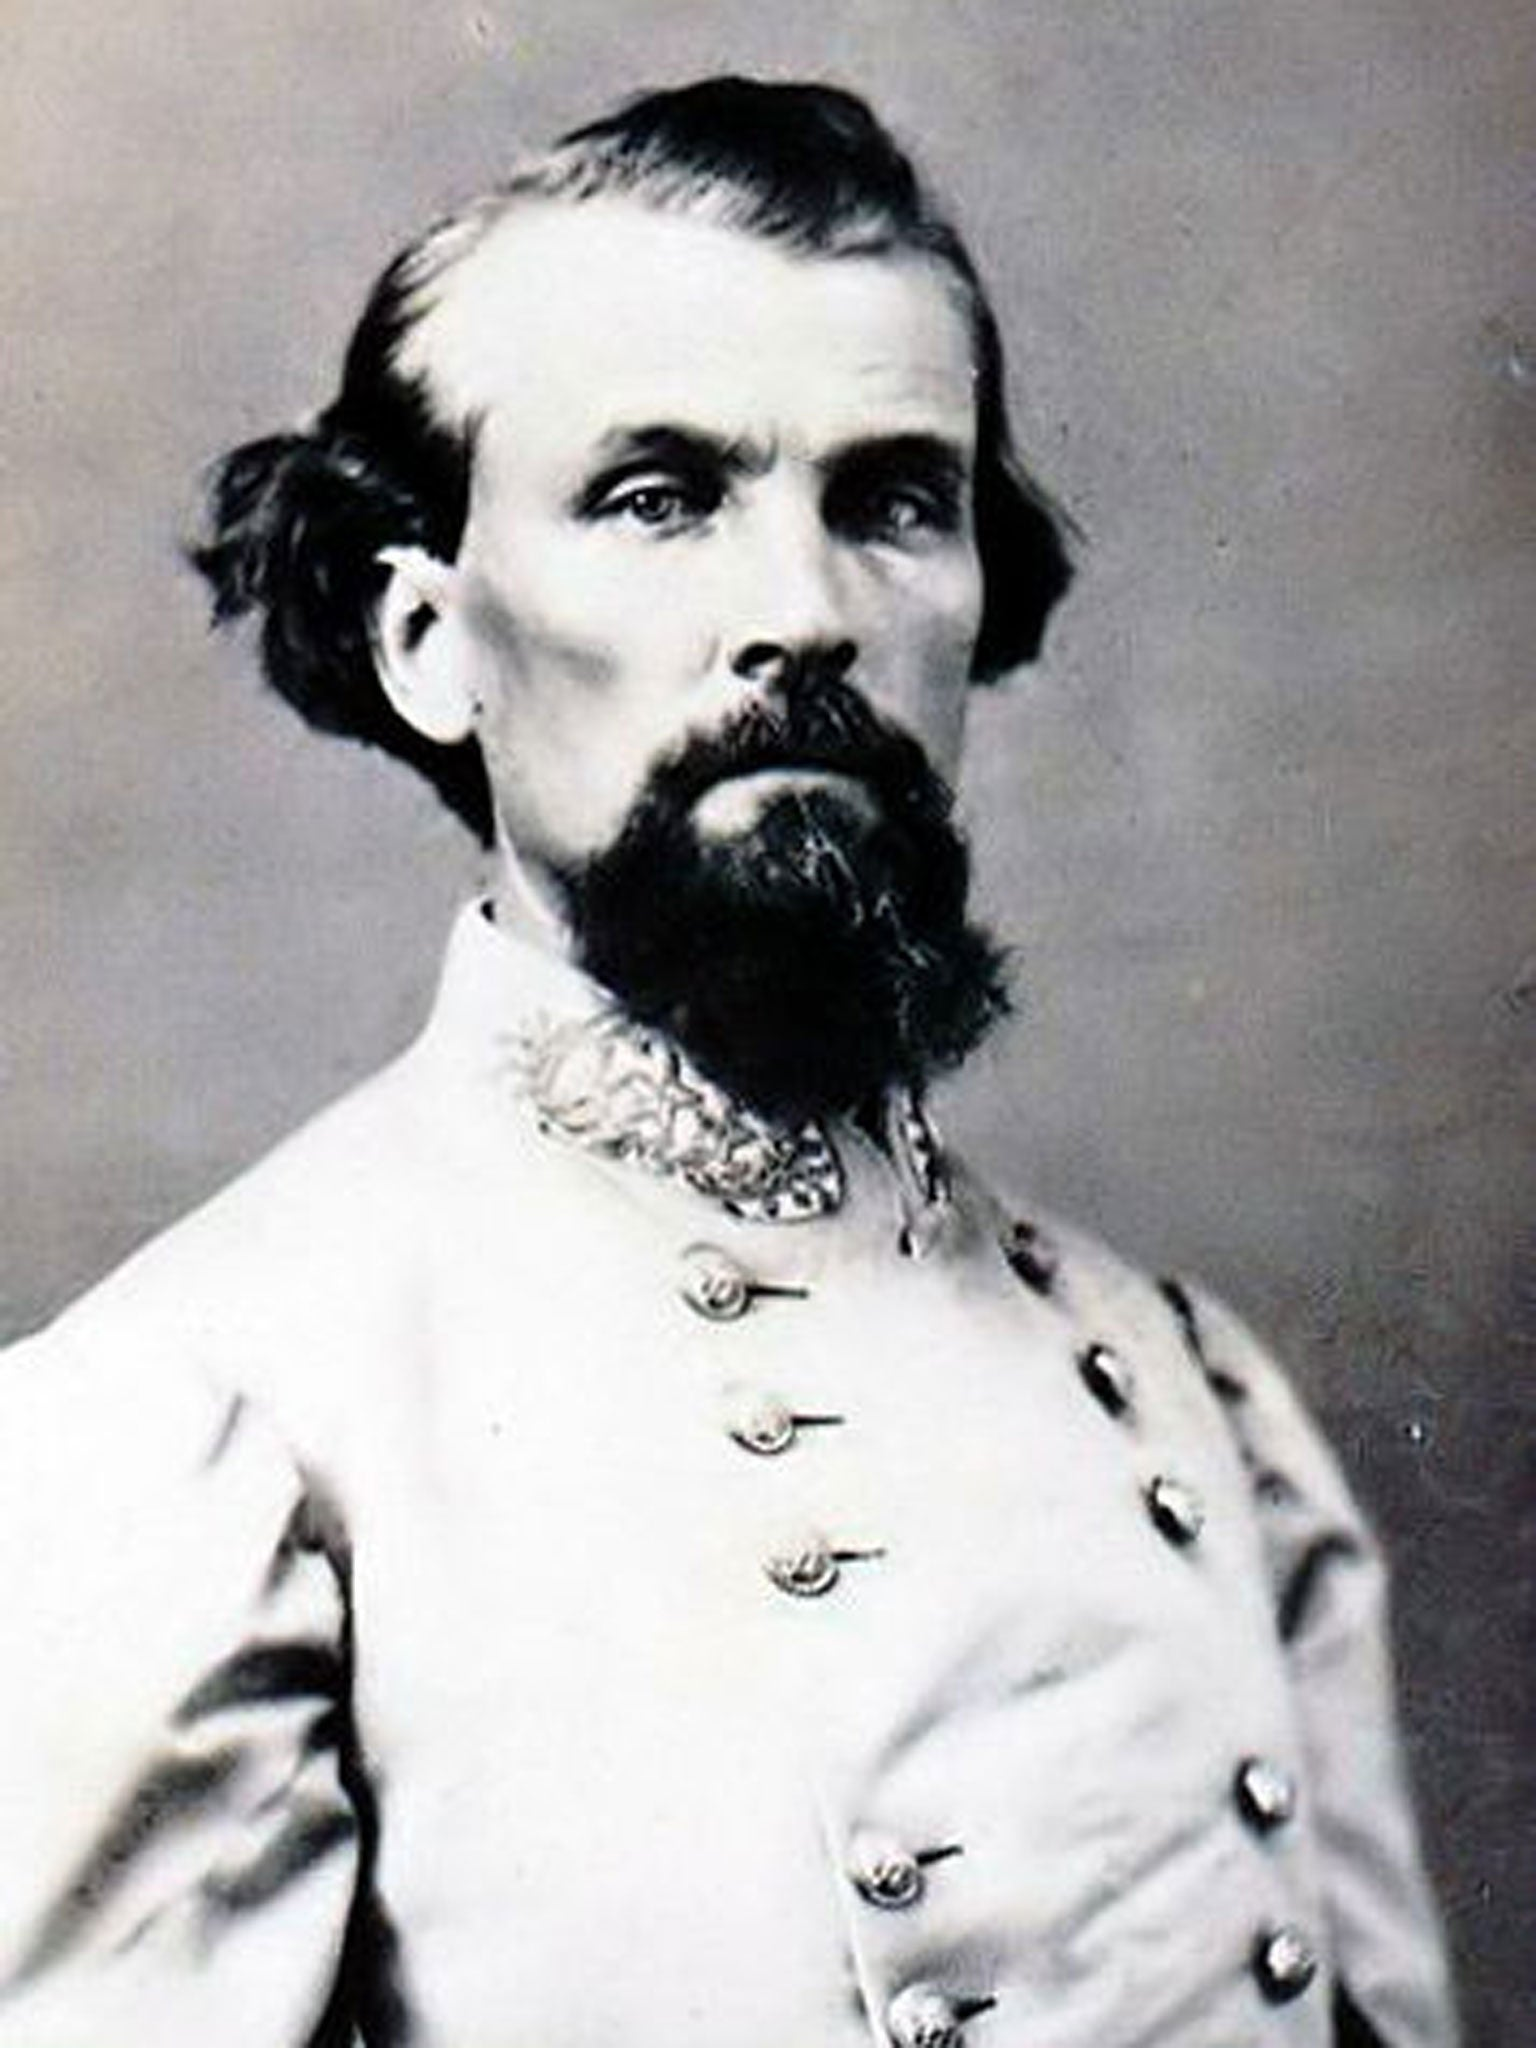 a biography of nathan bedford forrest On the confederate side in the war nathan bedford forest started his military    education/ history/ biographies/ nathan-bedford-forresthtml  .